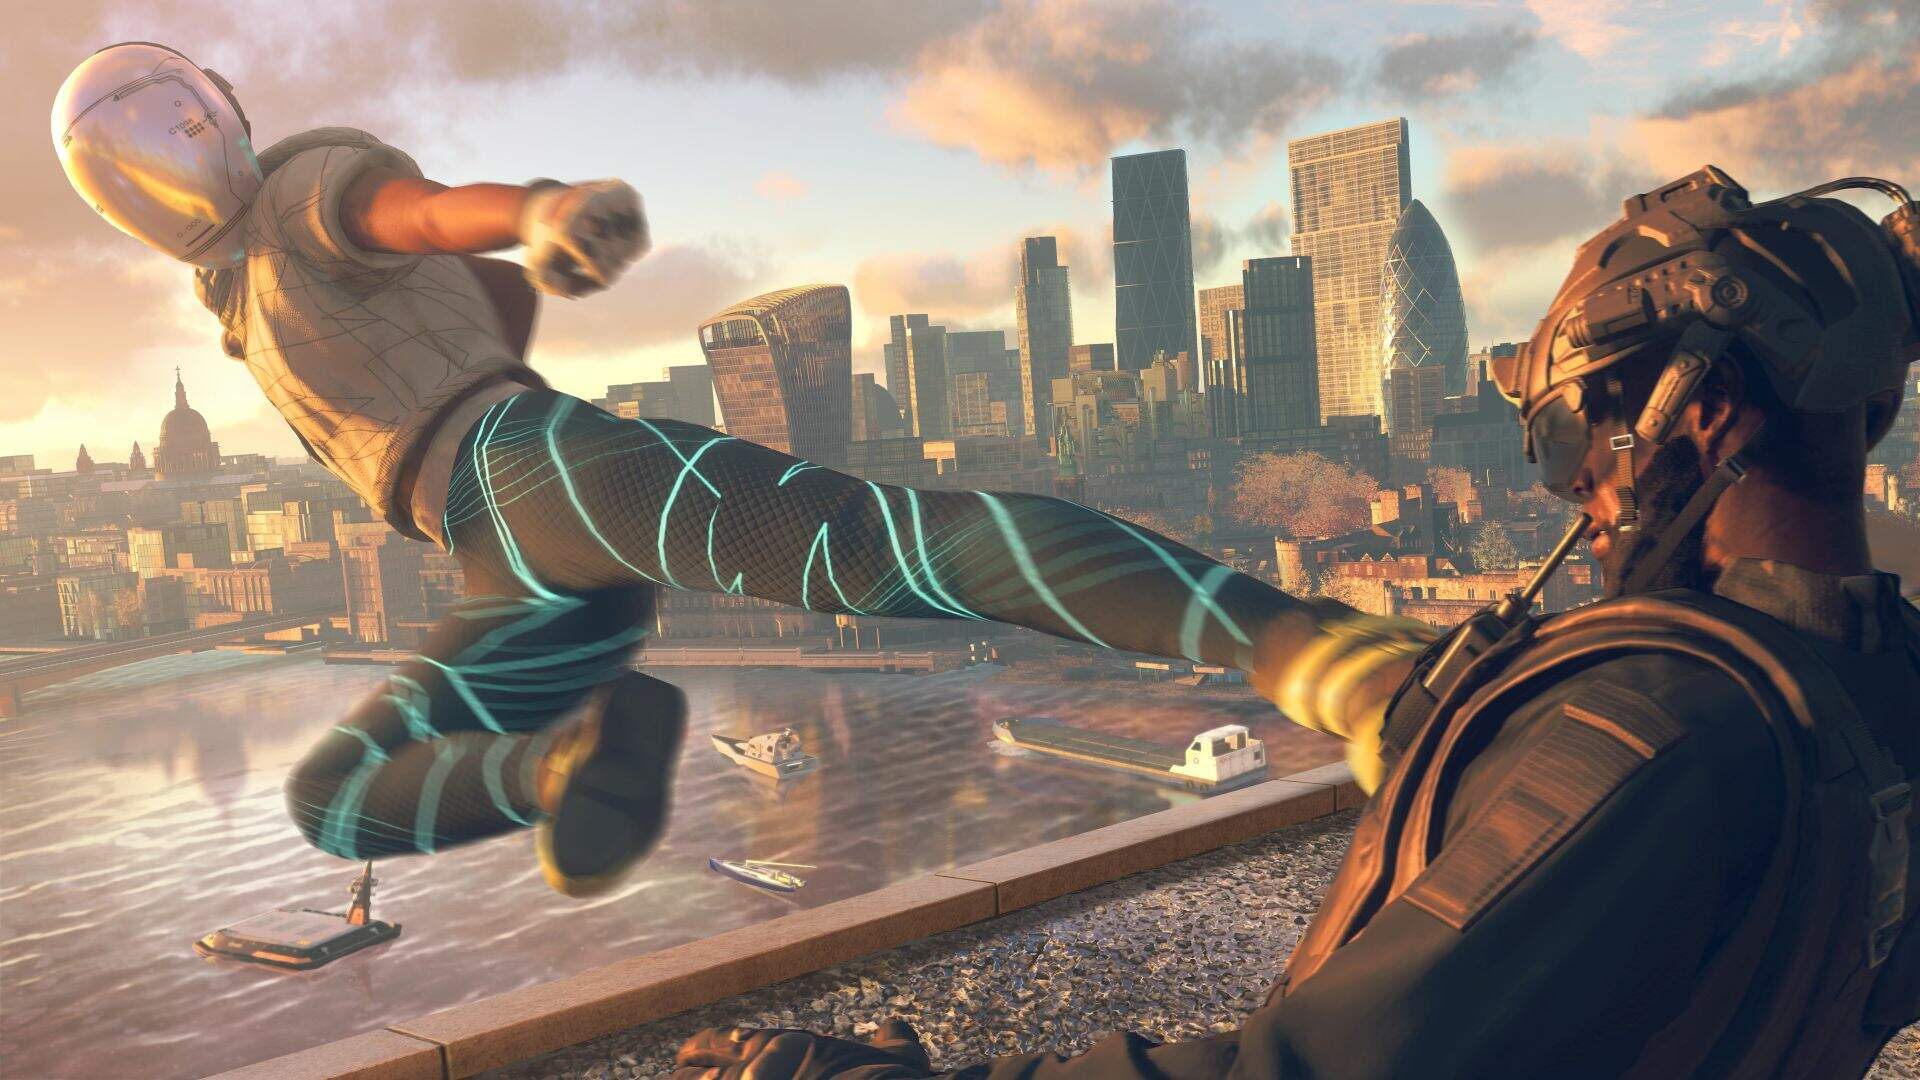 Ubisoft Is Prepared to Delay Games If Next-Gen Consoles Miss Launch Window, Says CEO